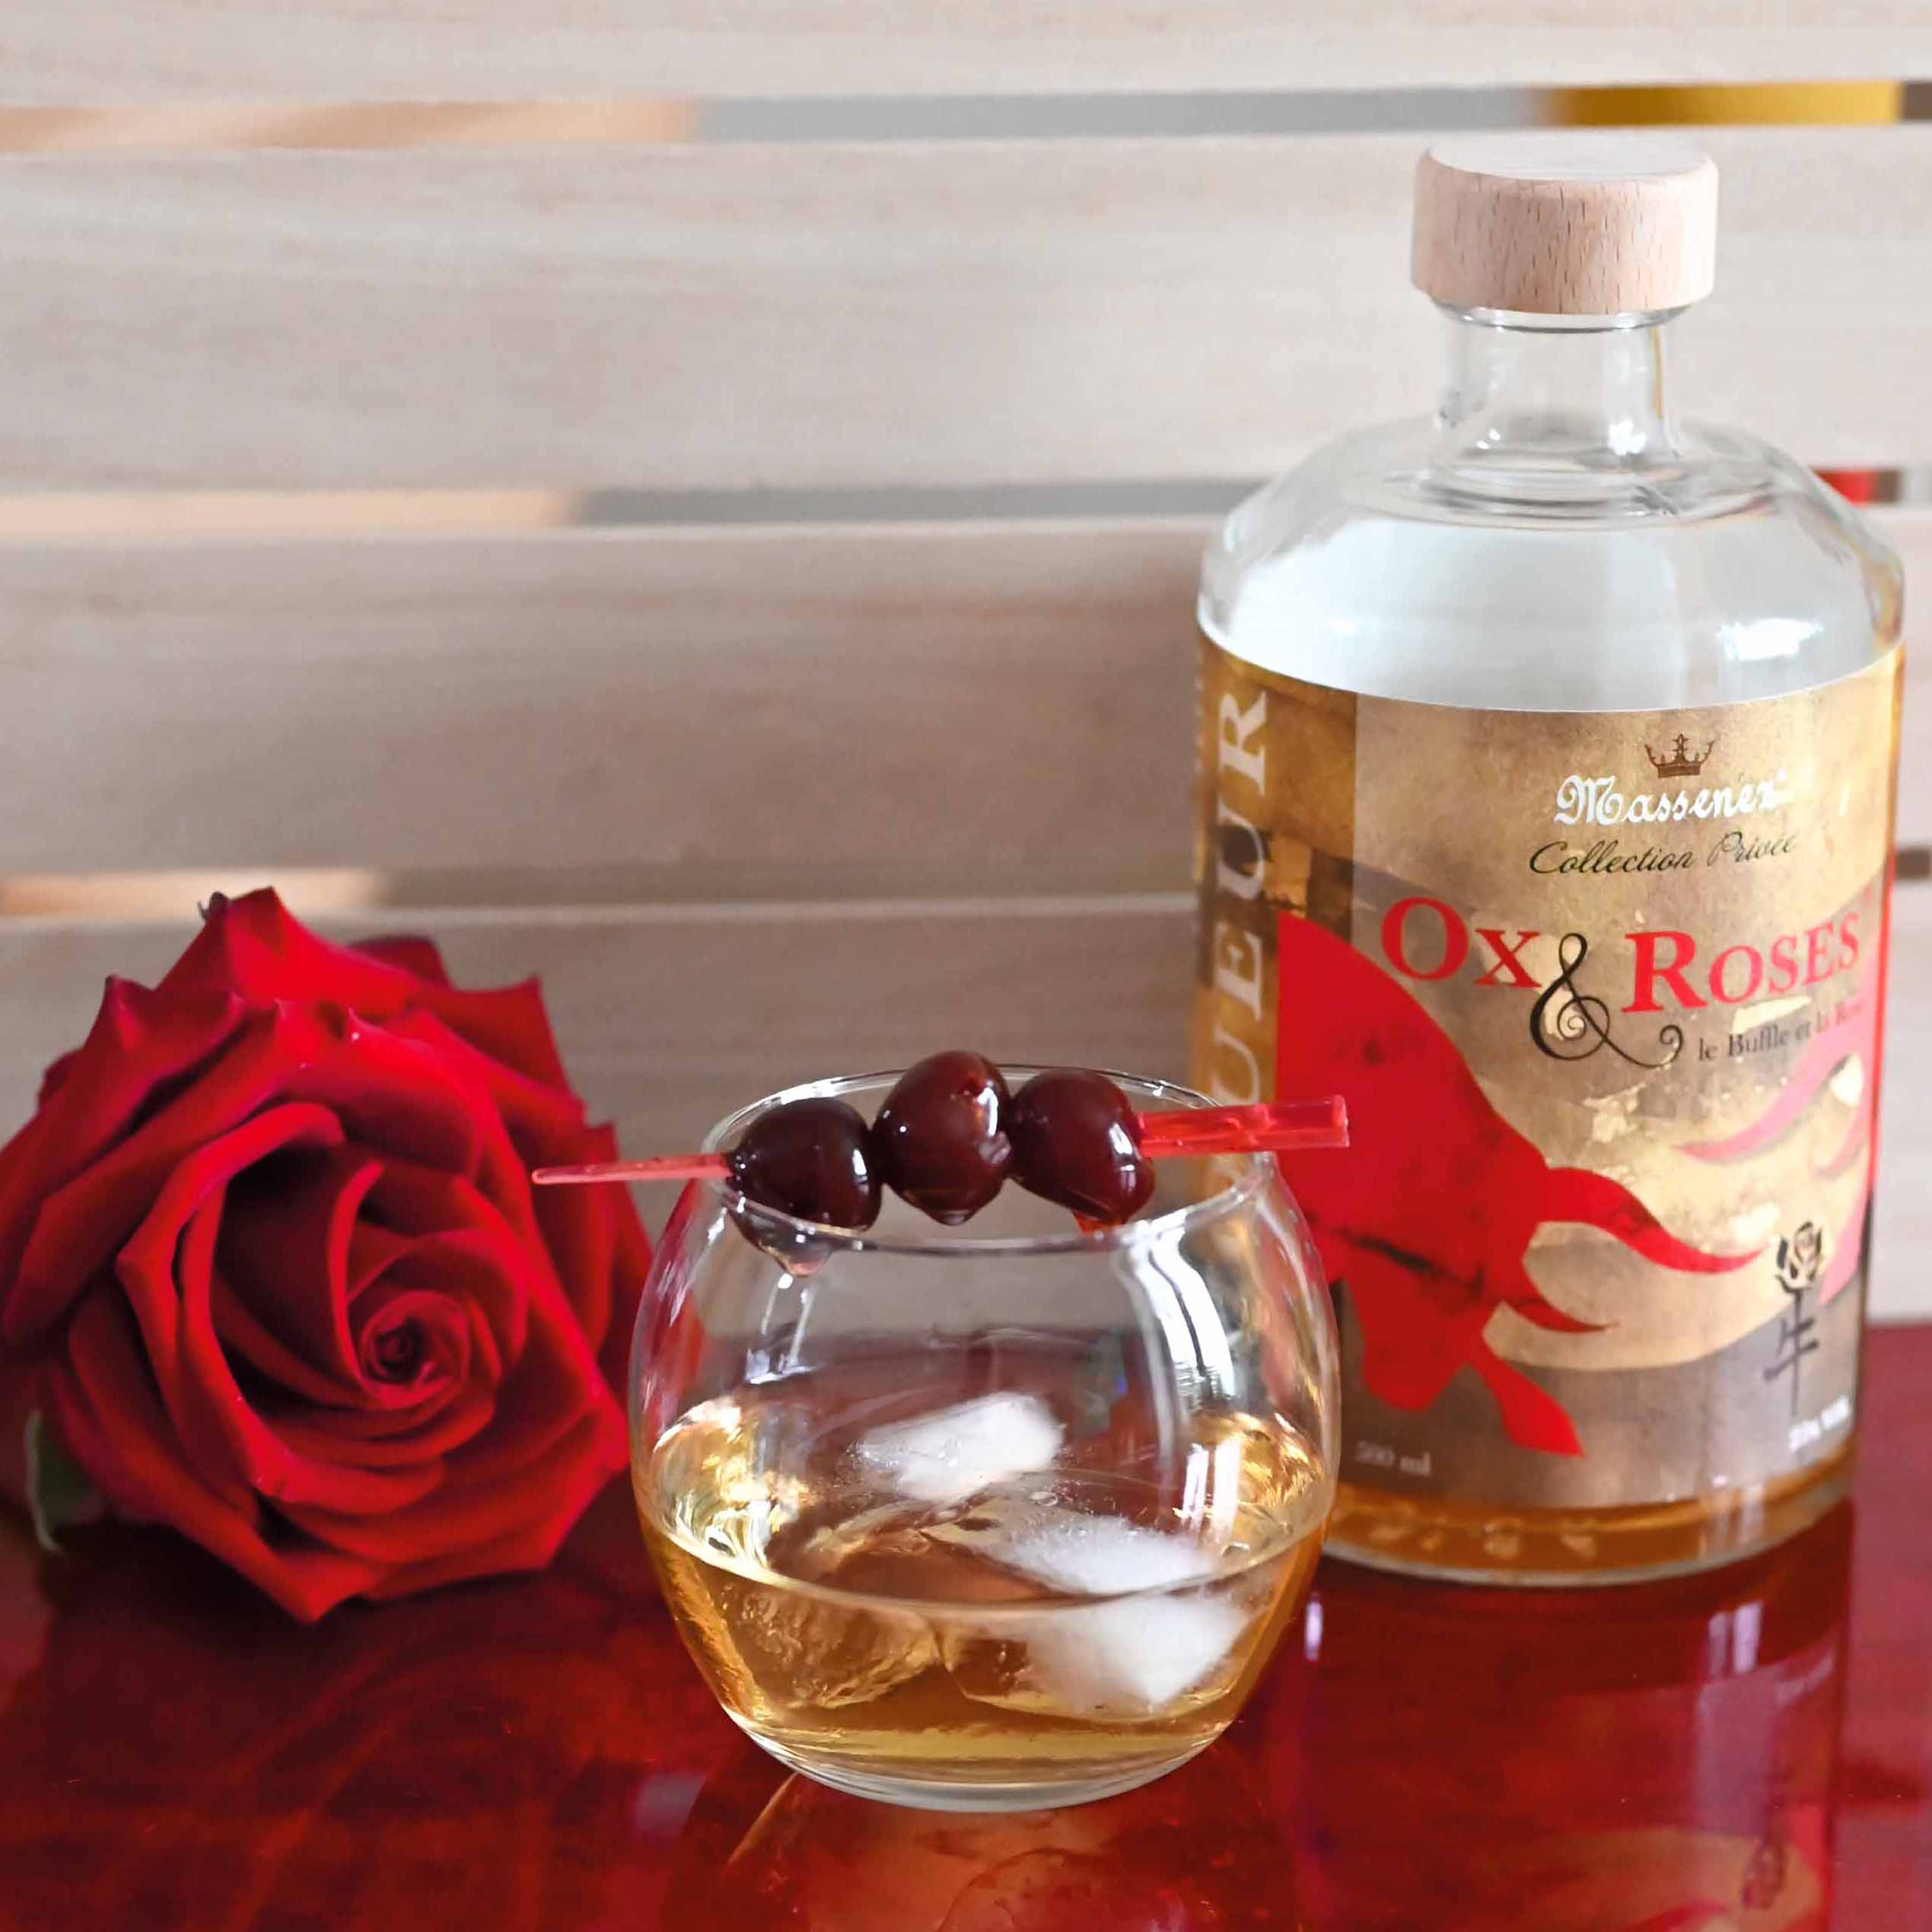 Ox & Roses pure